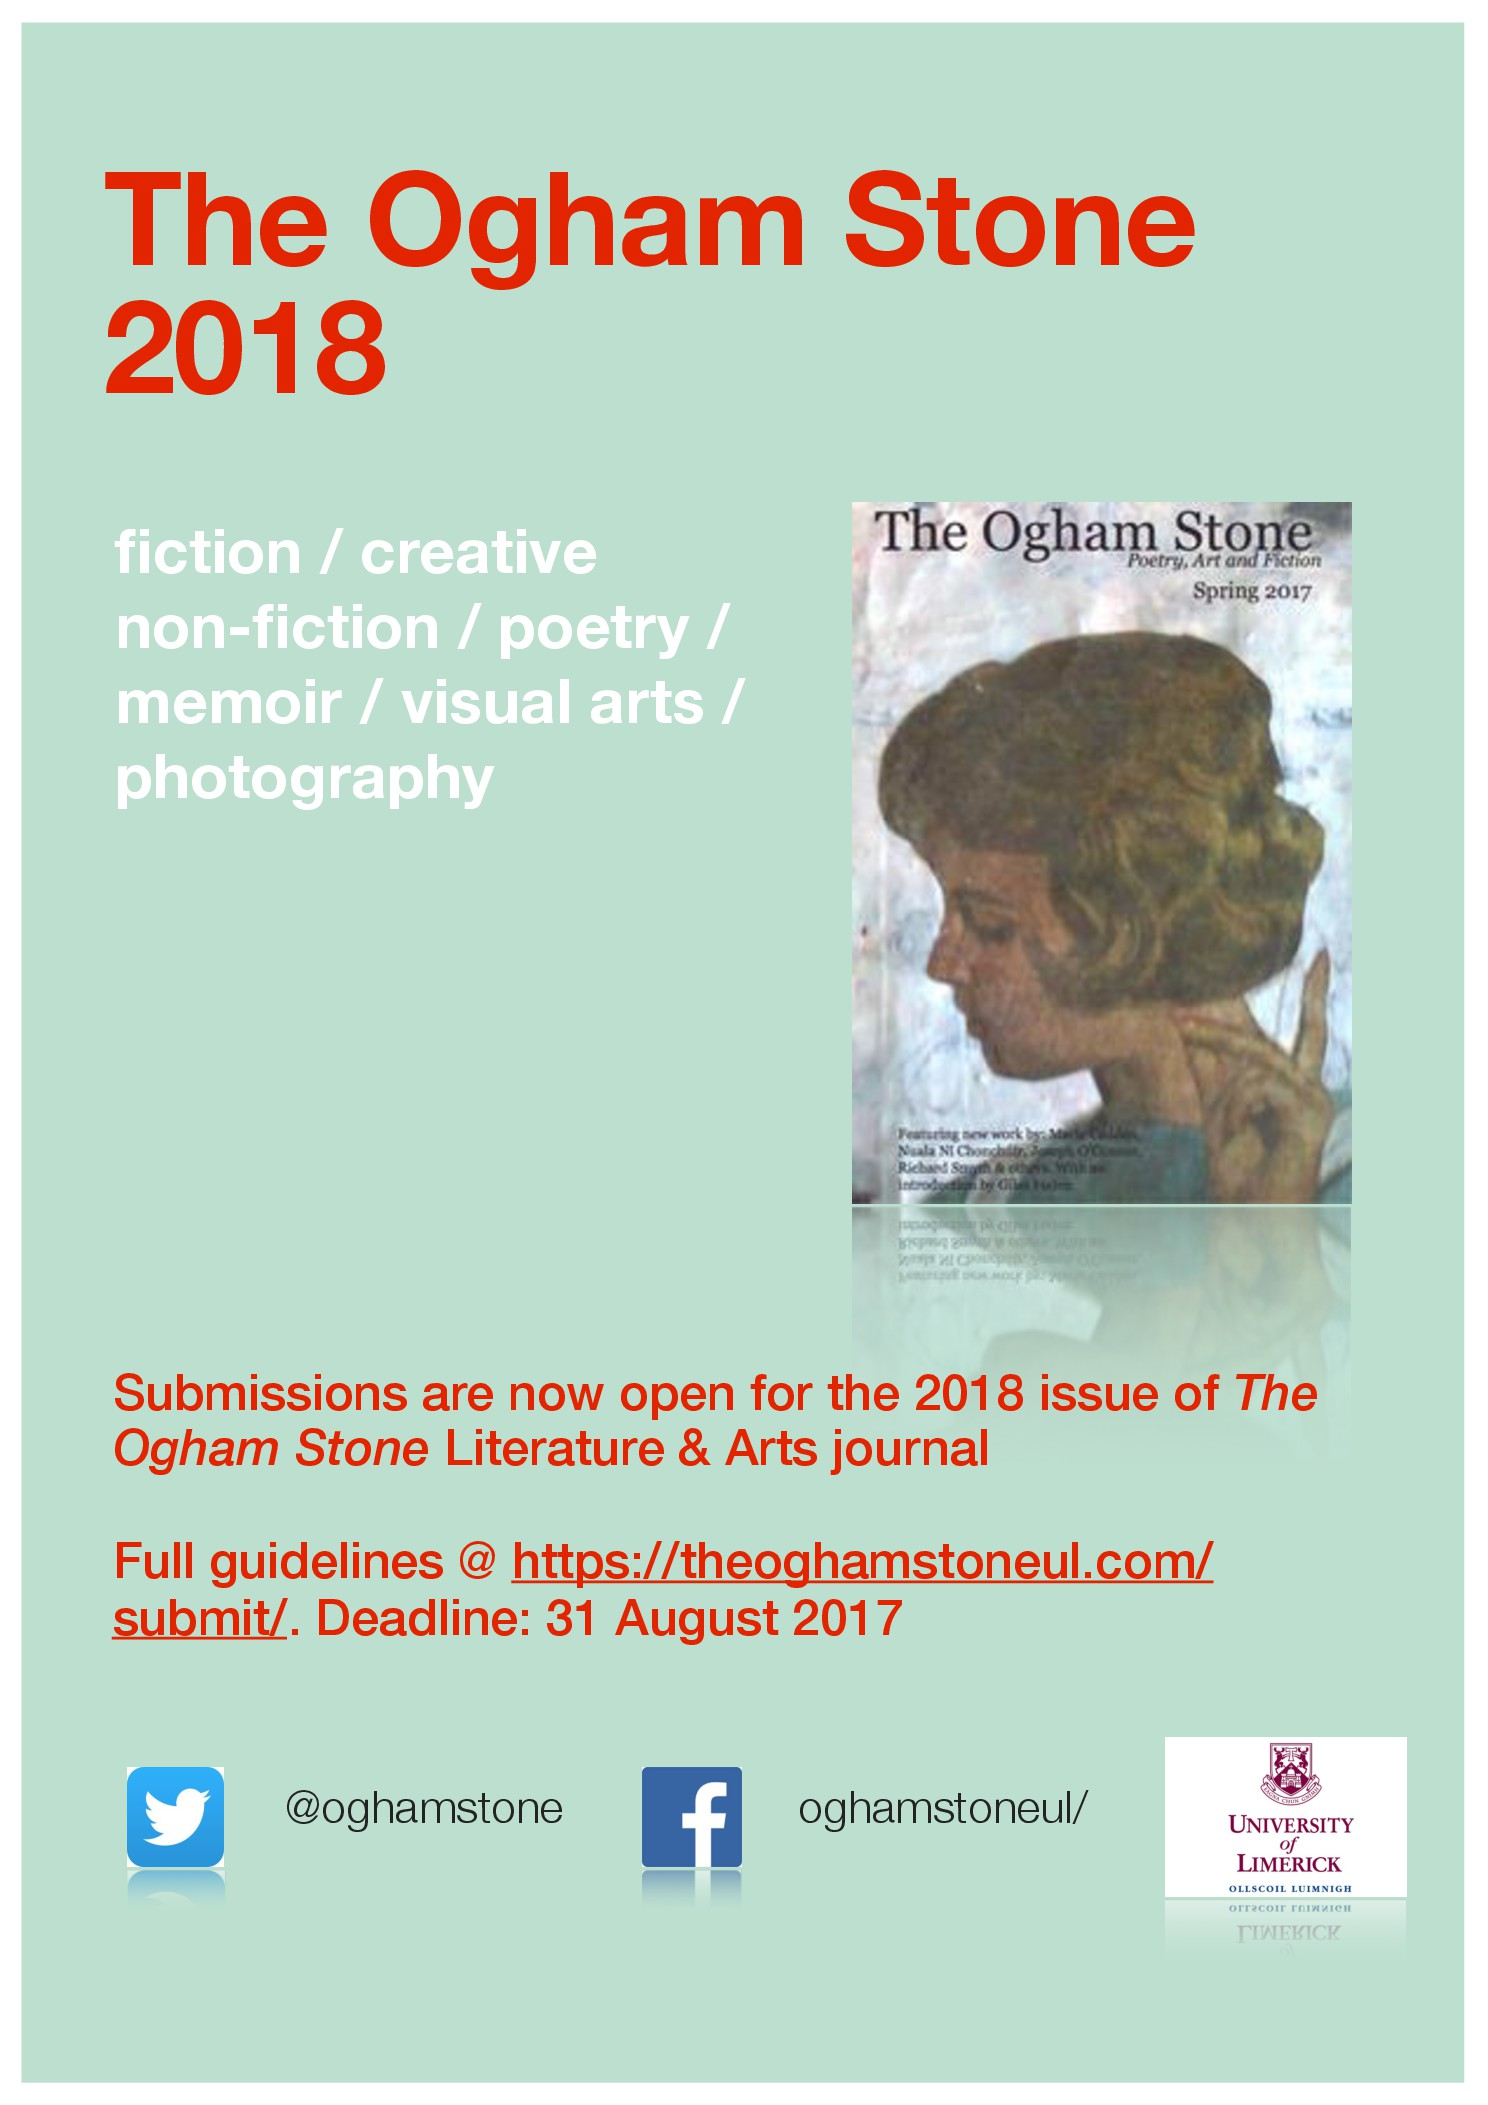 The Ogham Stone 2018 Issue: Call for Submissions – The Ogham